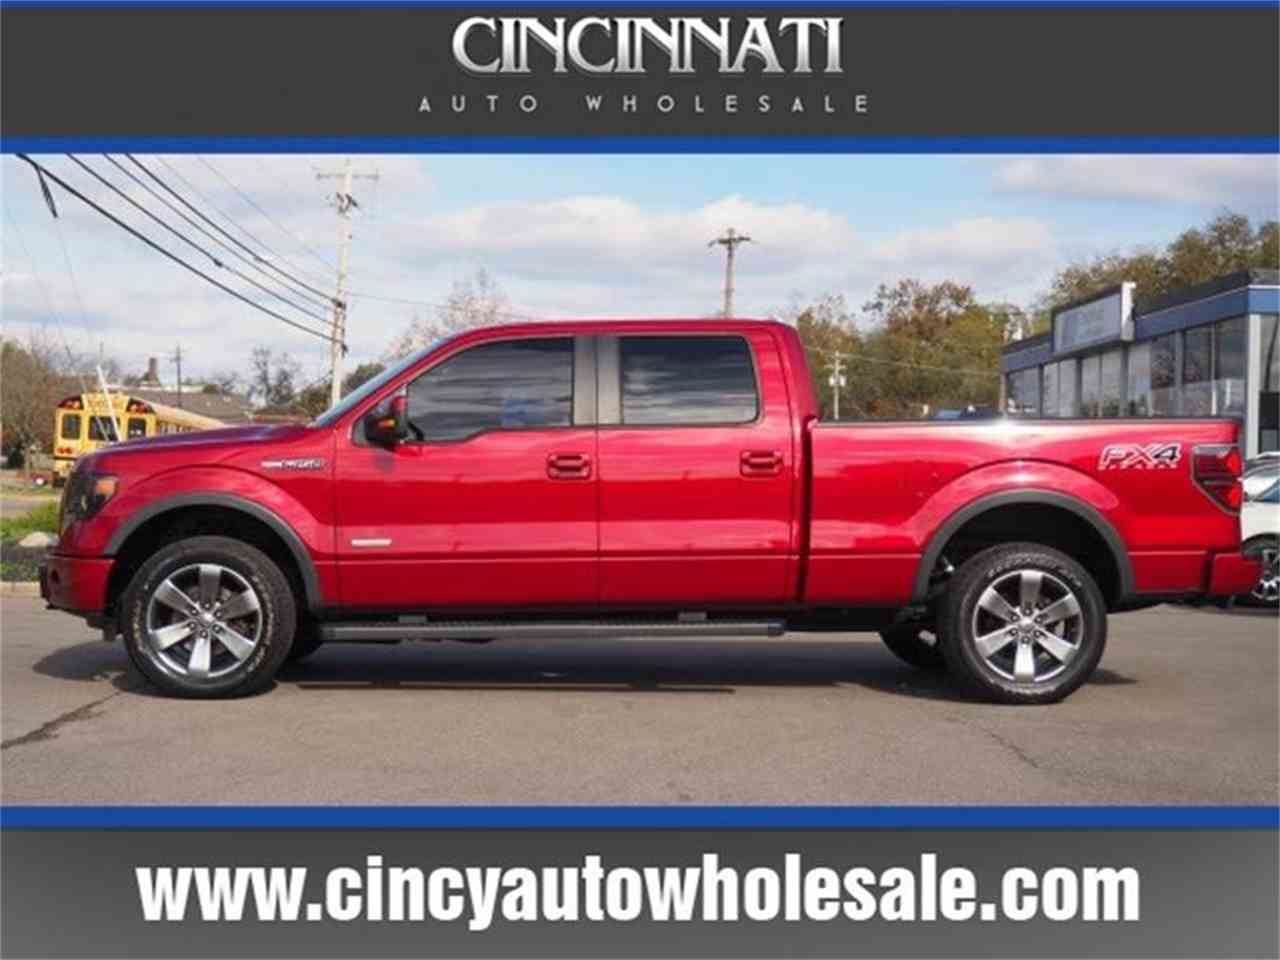 Large Picture of 2014 Ford F150 - $29,900.00 Offered by Cincinnati Auto Wholesale - MBNX